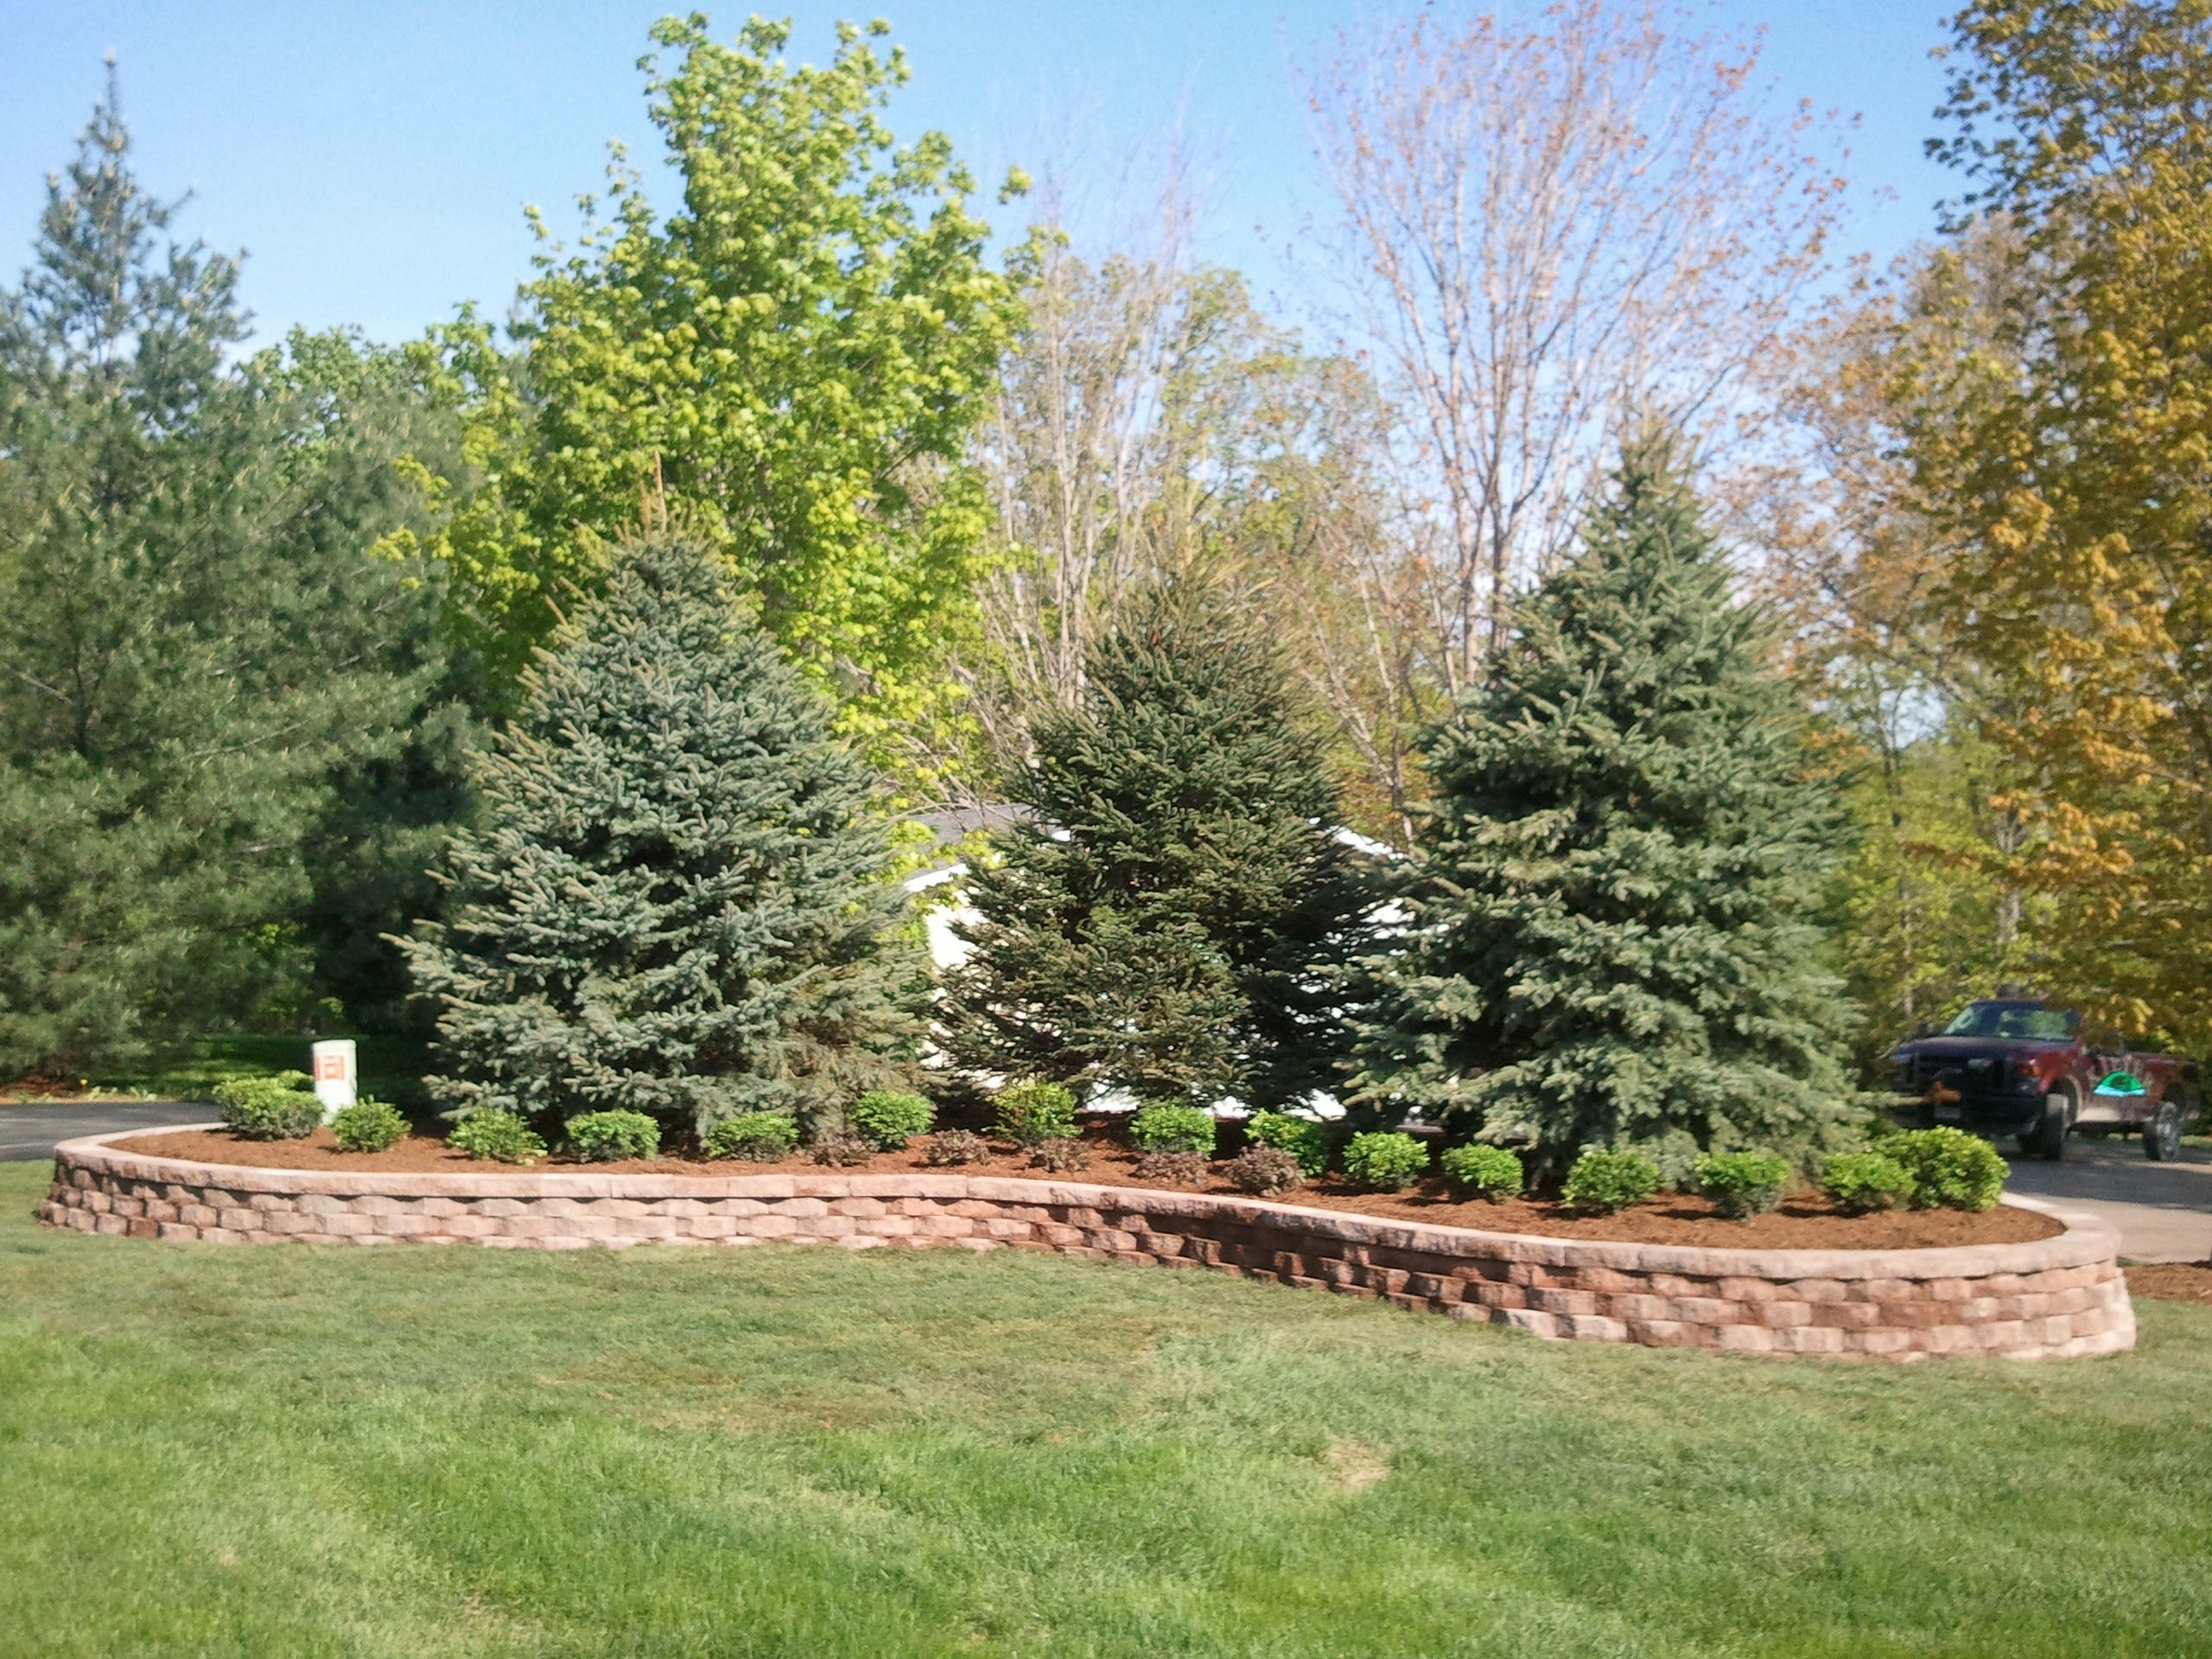 Pictures of berms in landscapes landscape berm 2011 for Garden privacy ideas